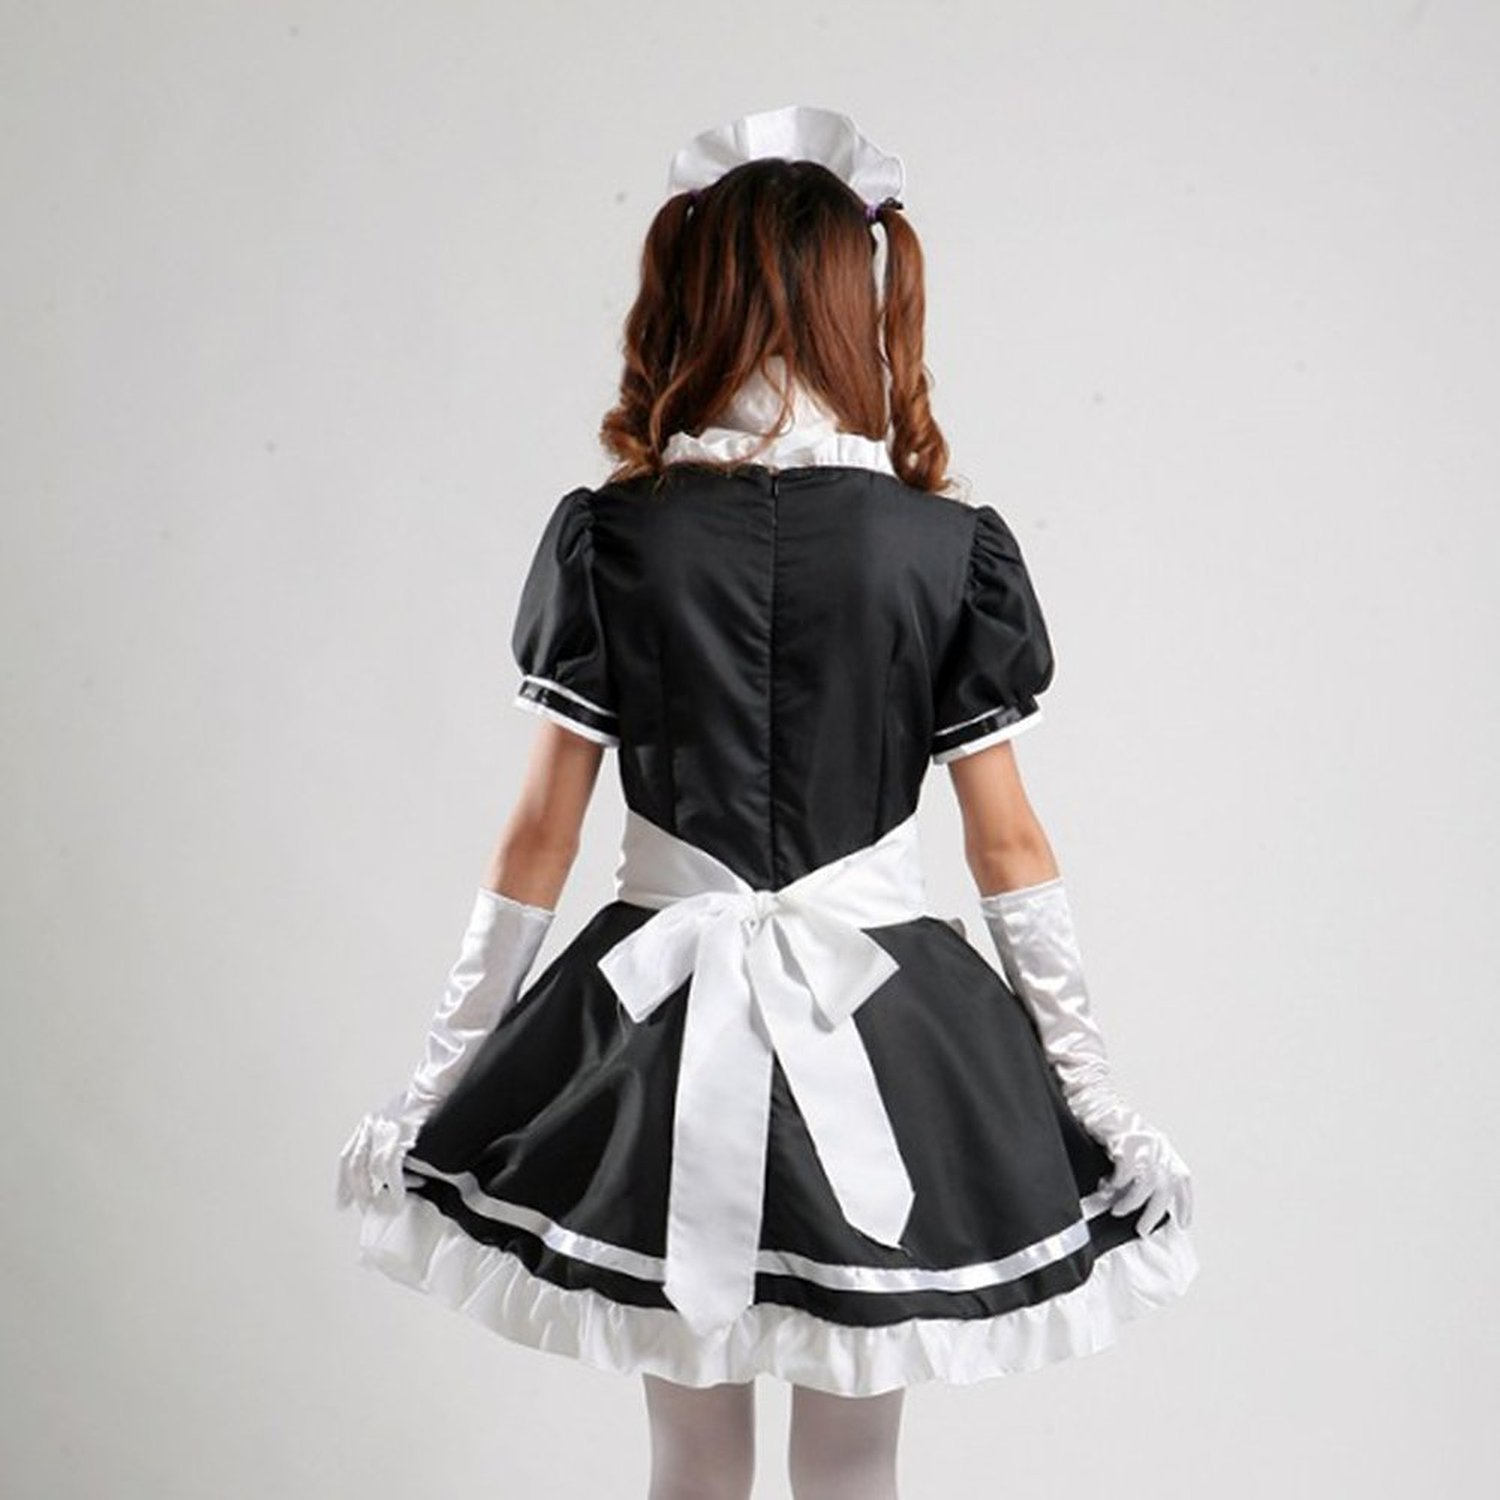 Amazon.com AvaCostume Womenu0027s Anime Cosplay French Apron Maid Fancy Dress Costume Clothing & Amazon.com: AvaCostume Womenu0027s Anime Cosplay French Apron Maid Fancy ...